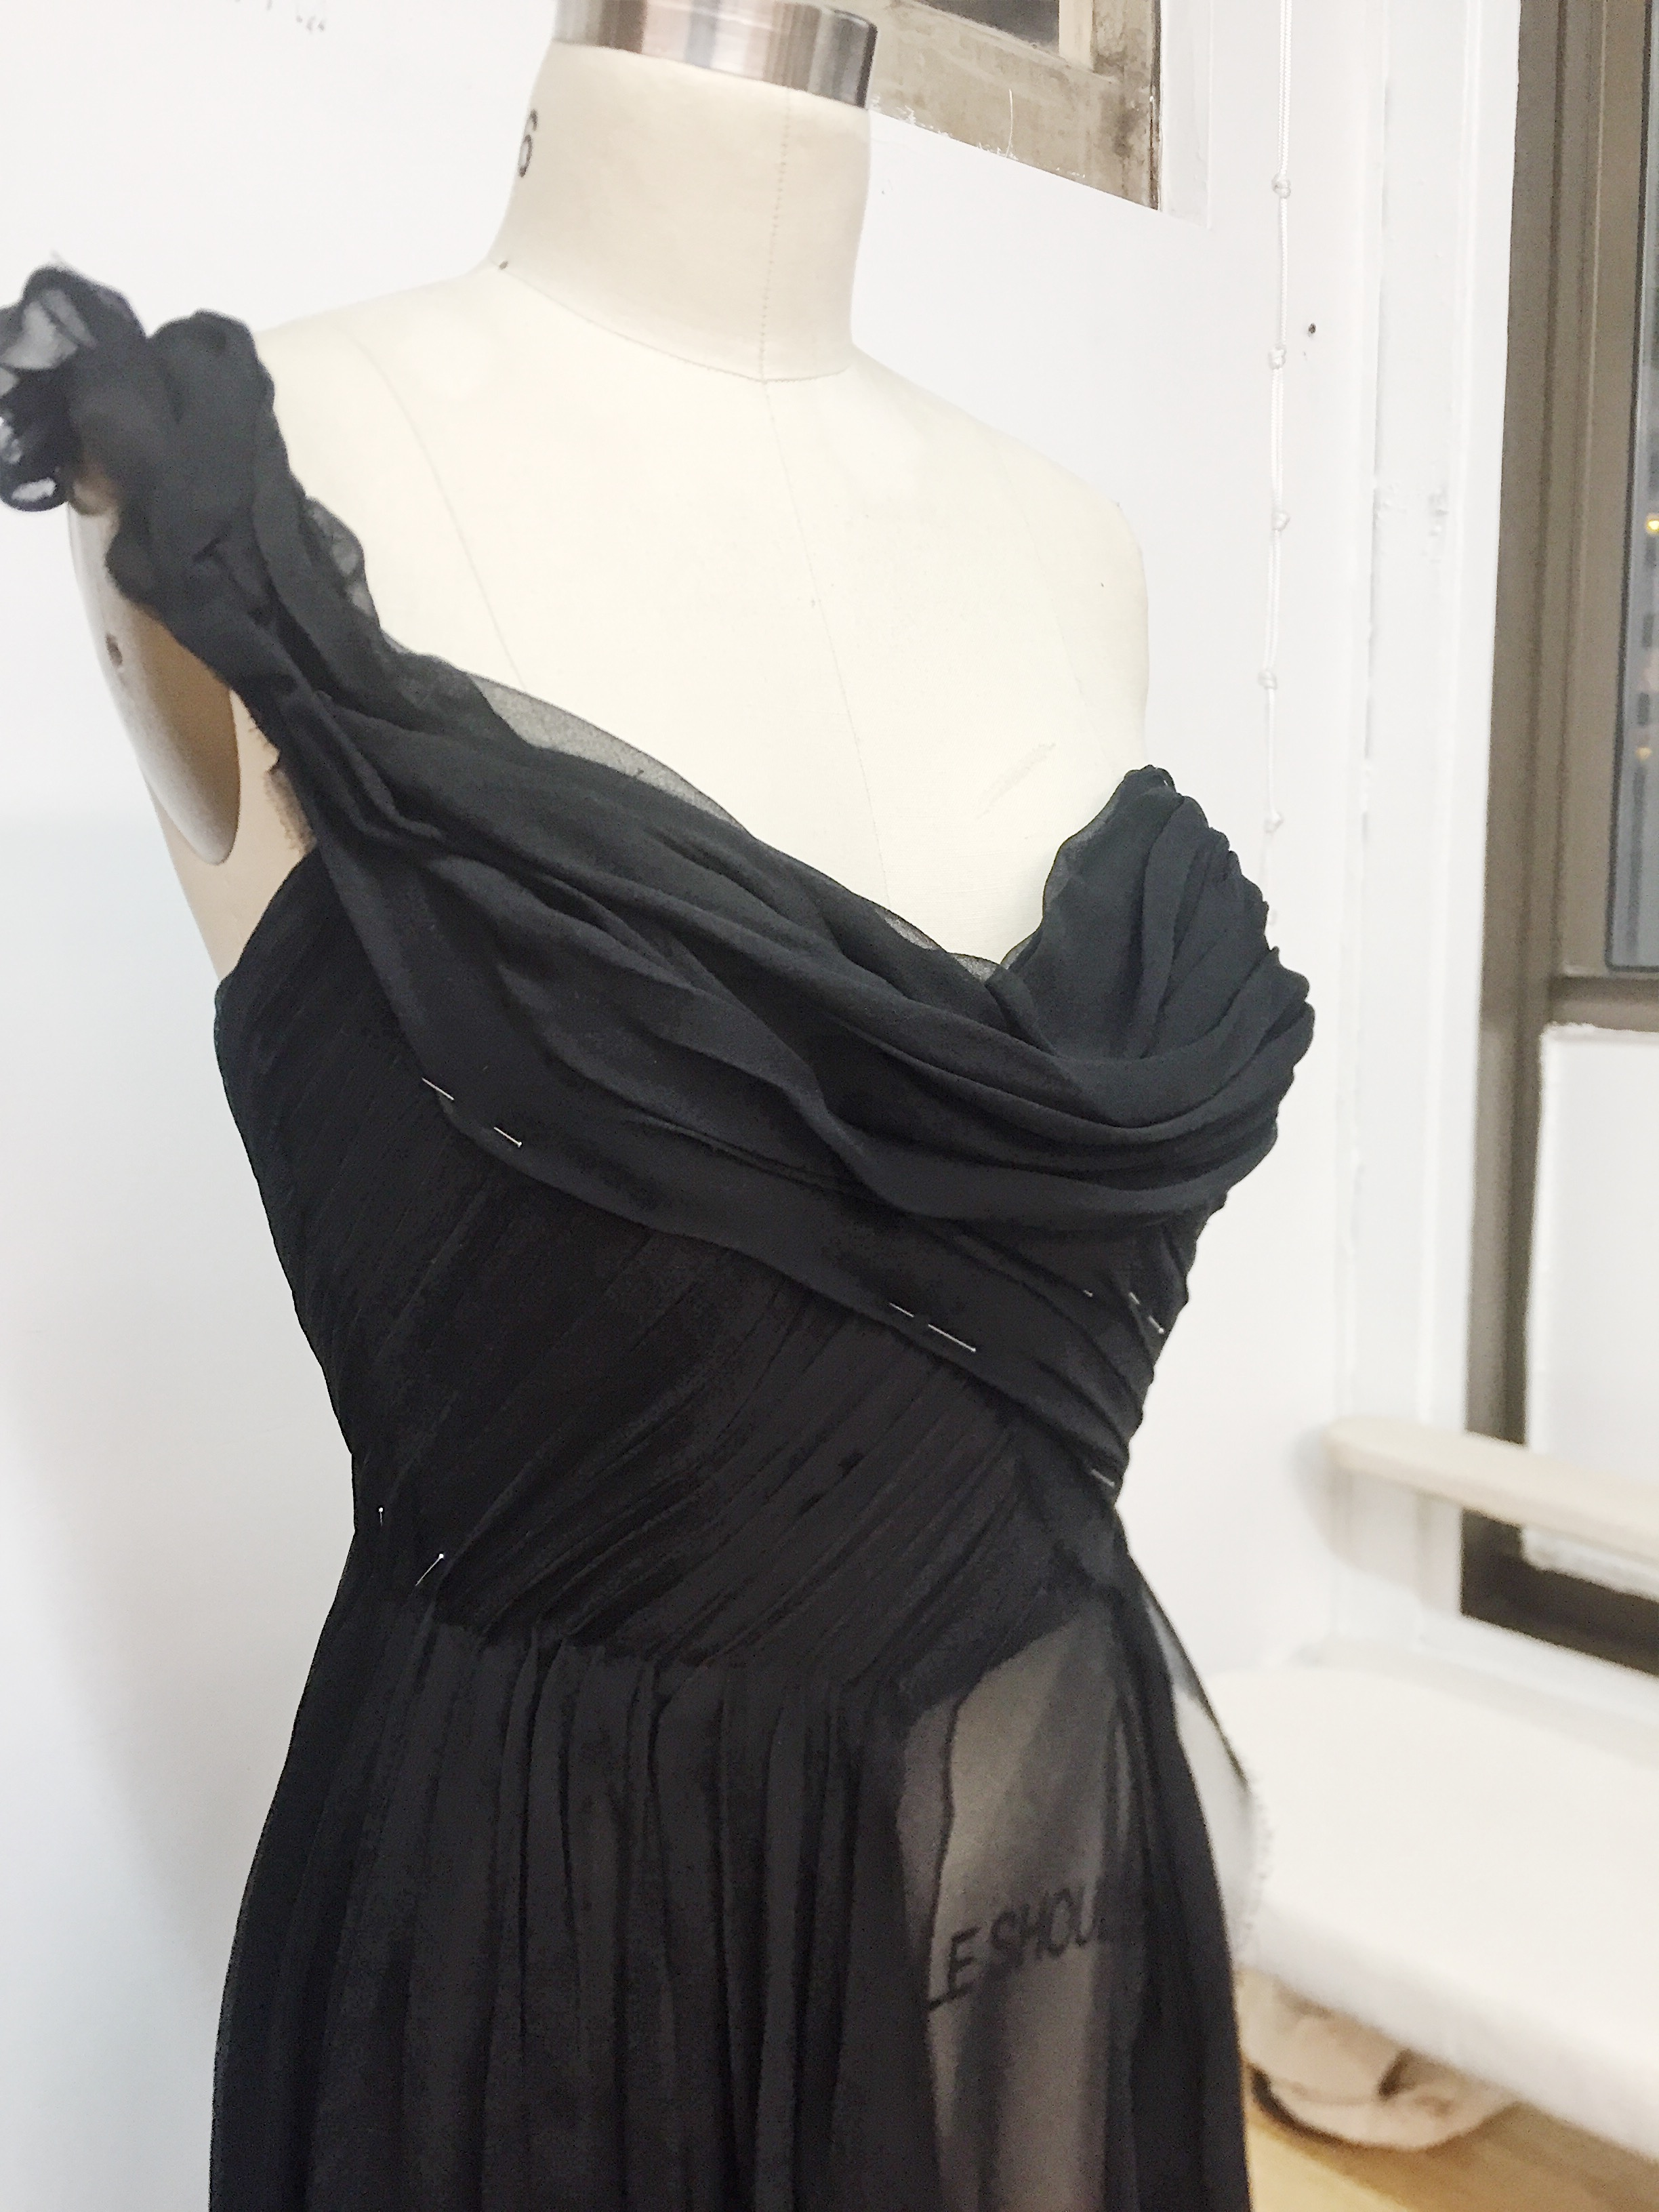 draping custom gown - Dierks Bentley Black video outfit